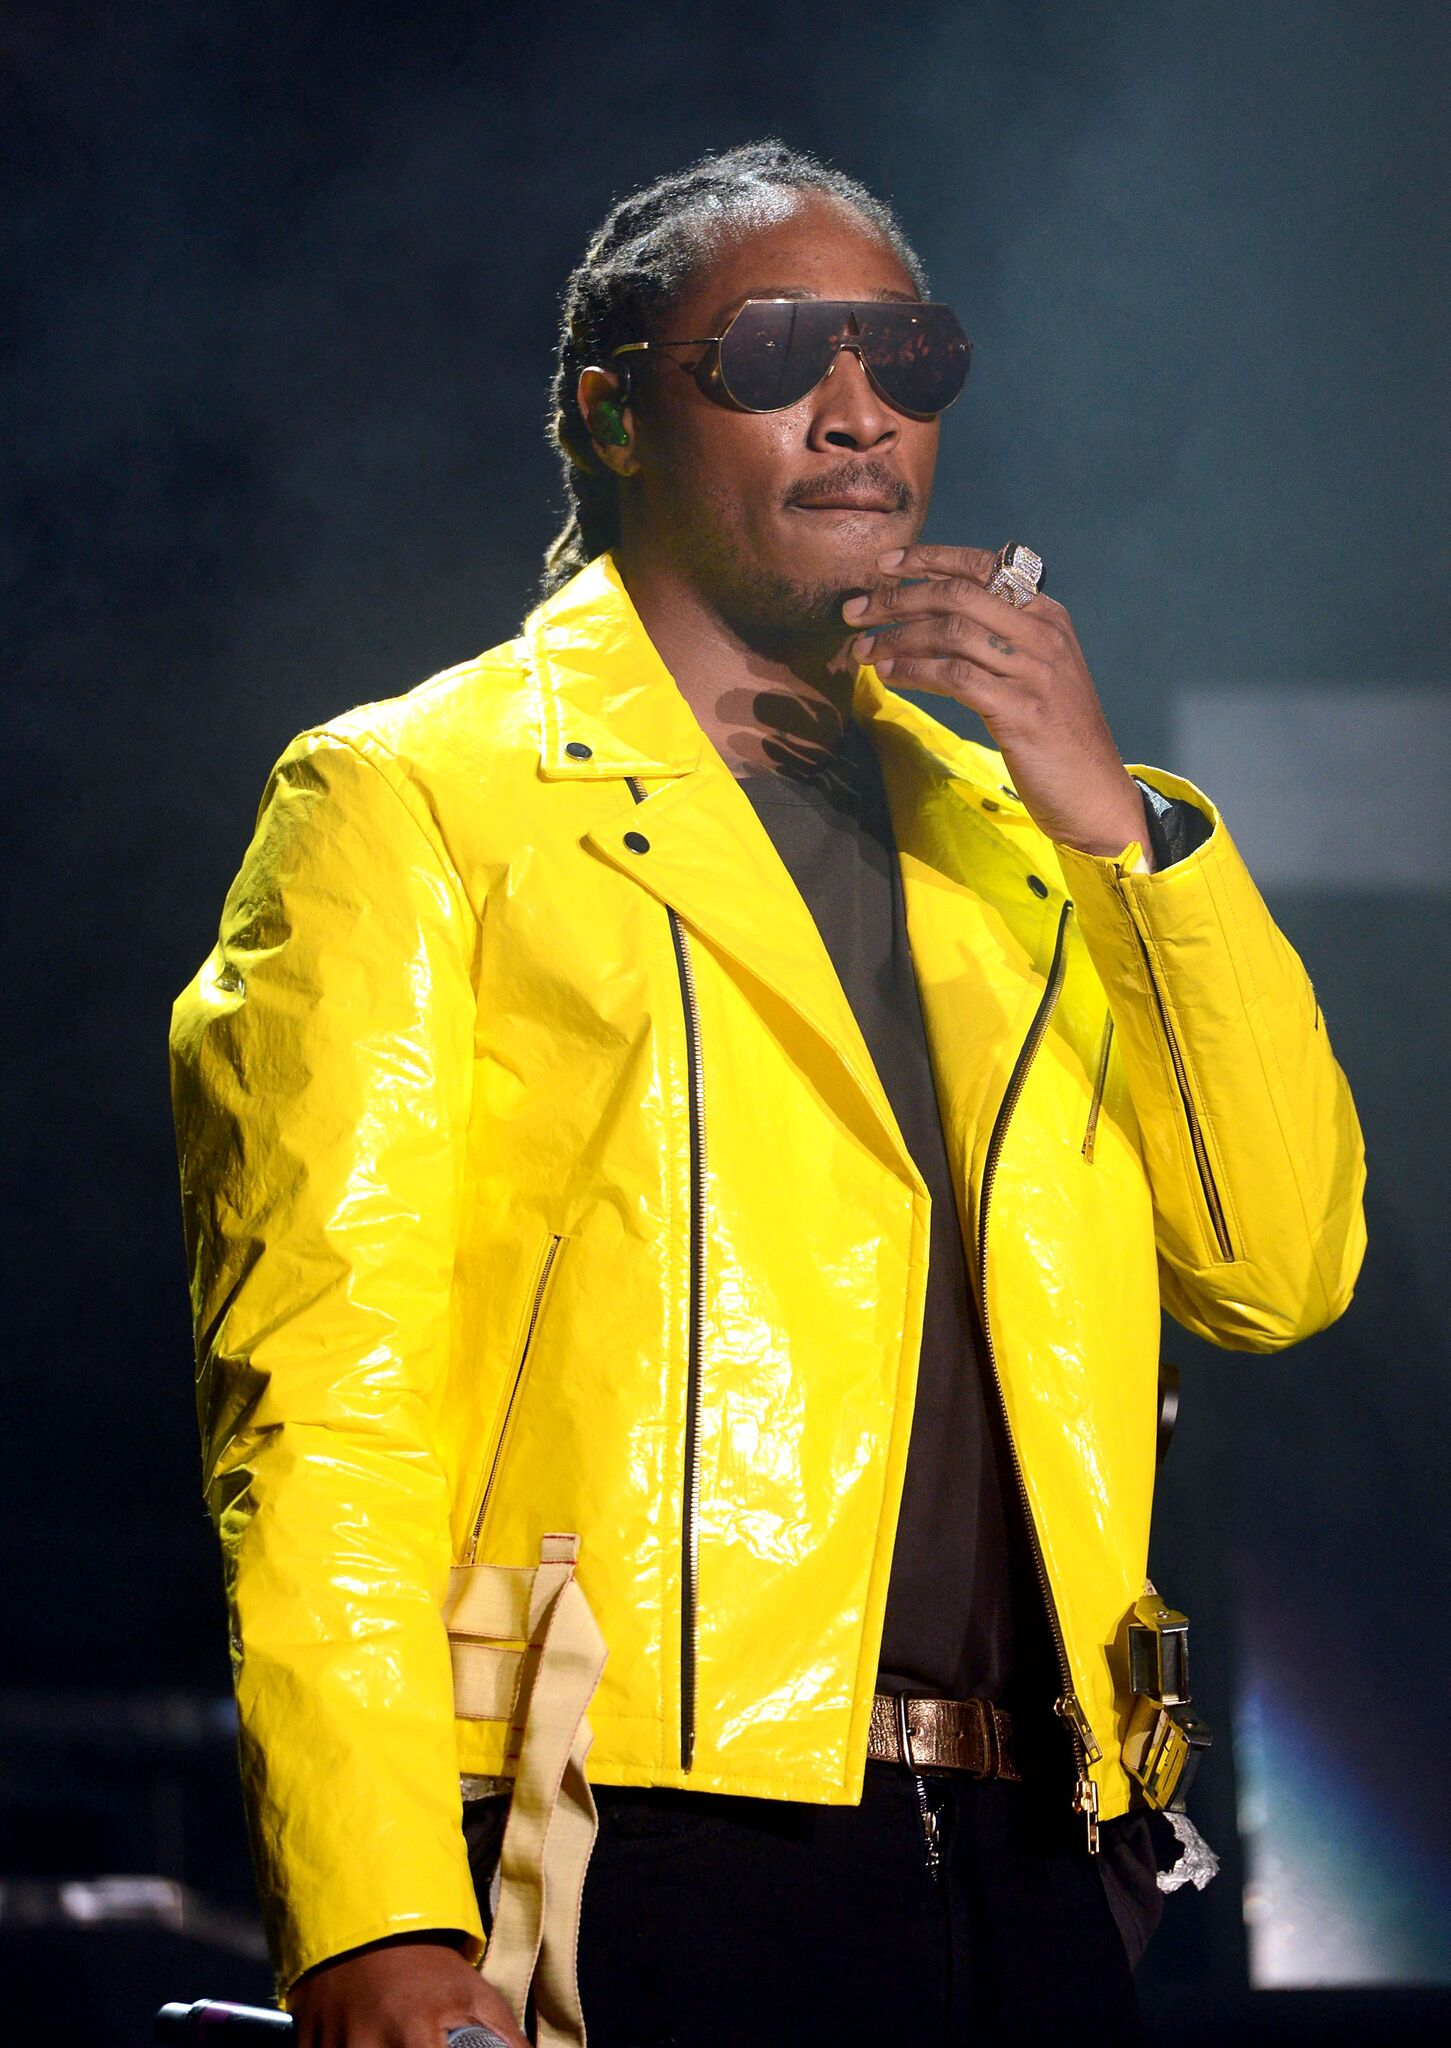 """Rapper Future performs onstage during the """"Nobody Safe"""" tour at The Forum 